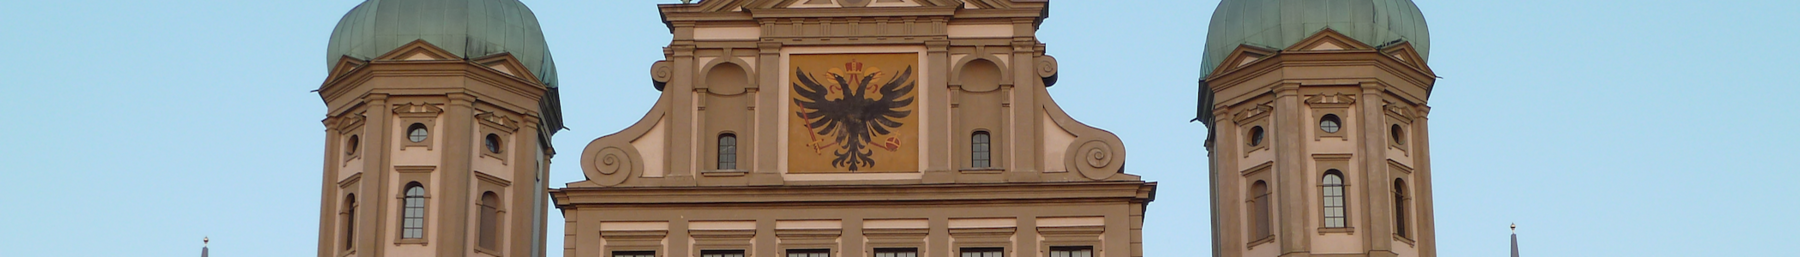 Augsburg Wikivoyage banner.png